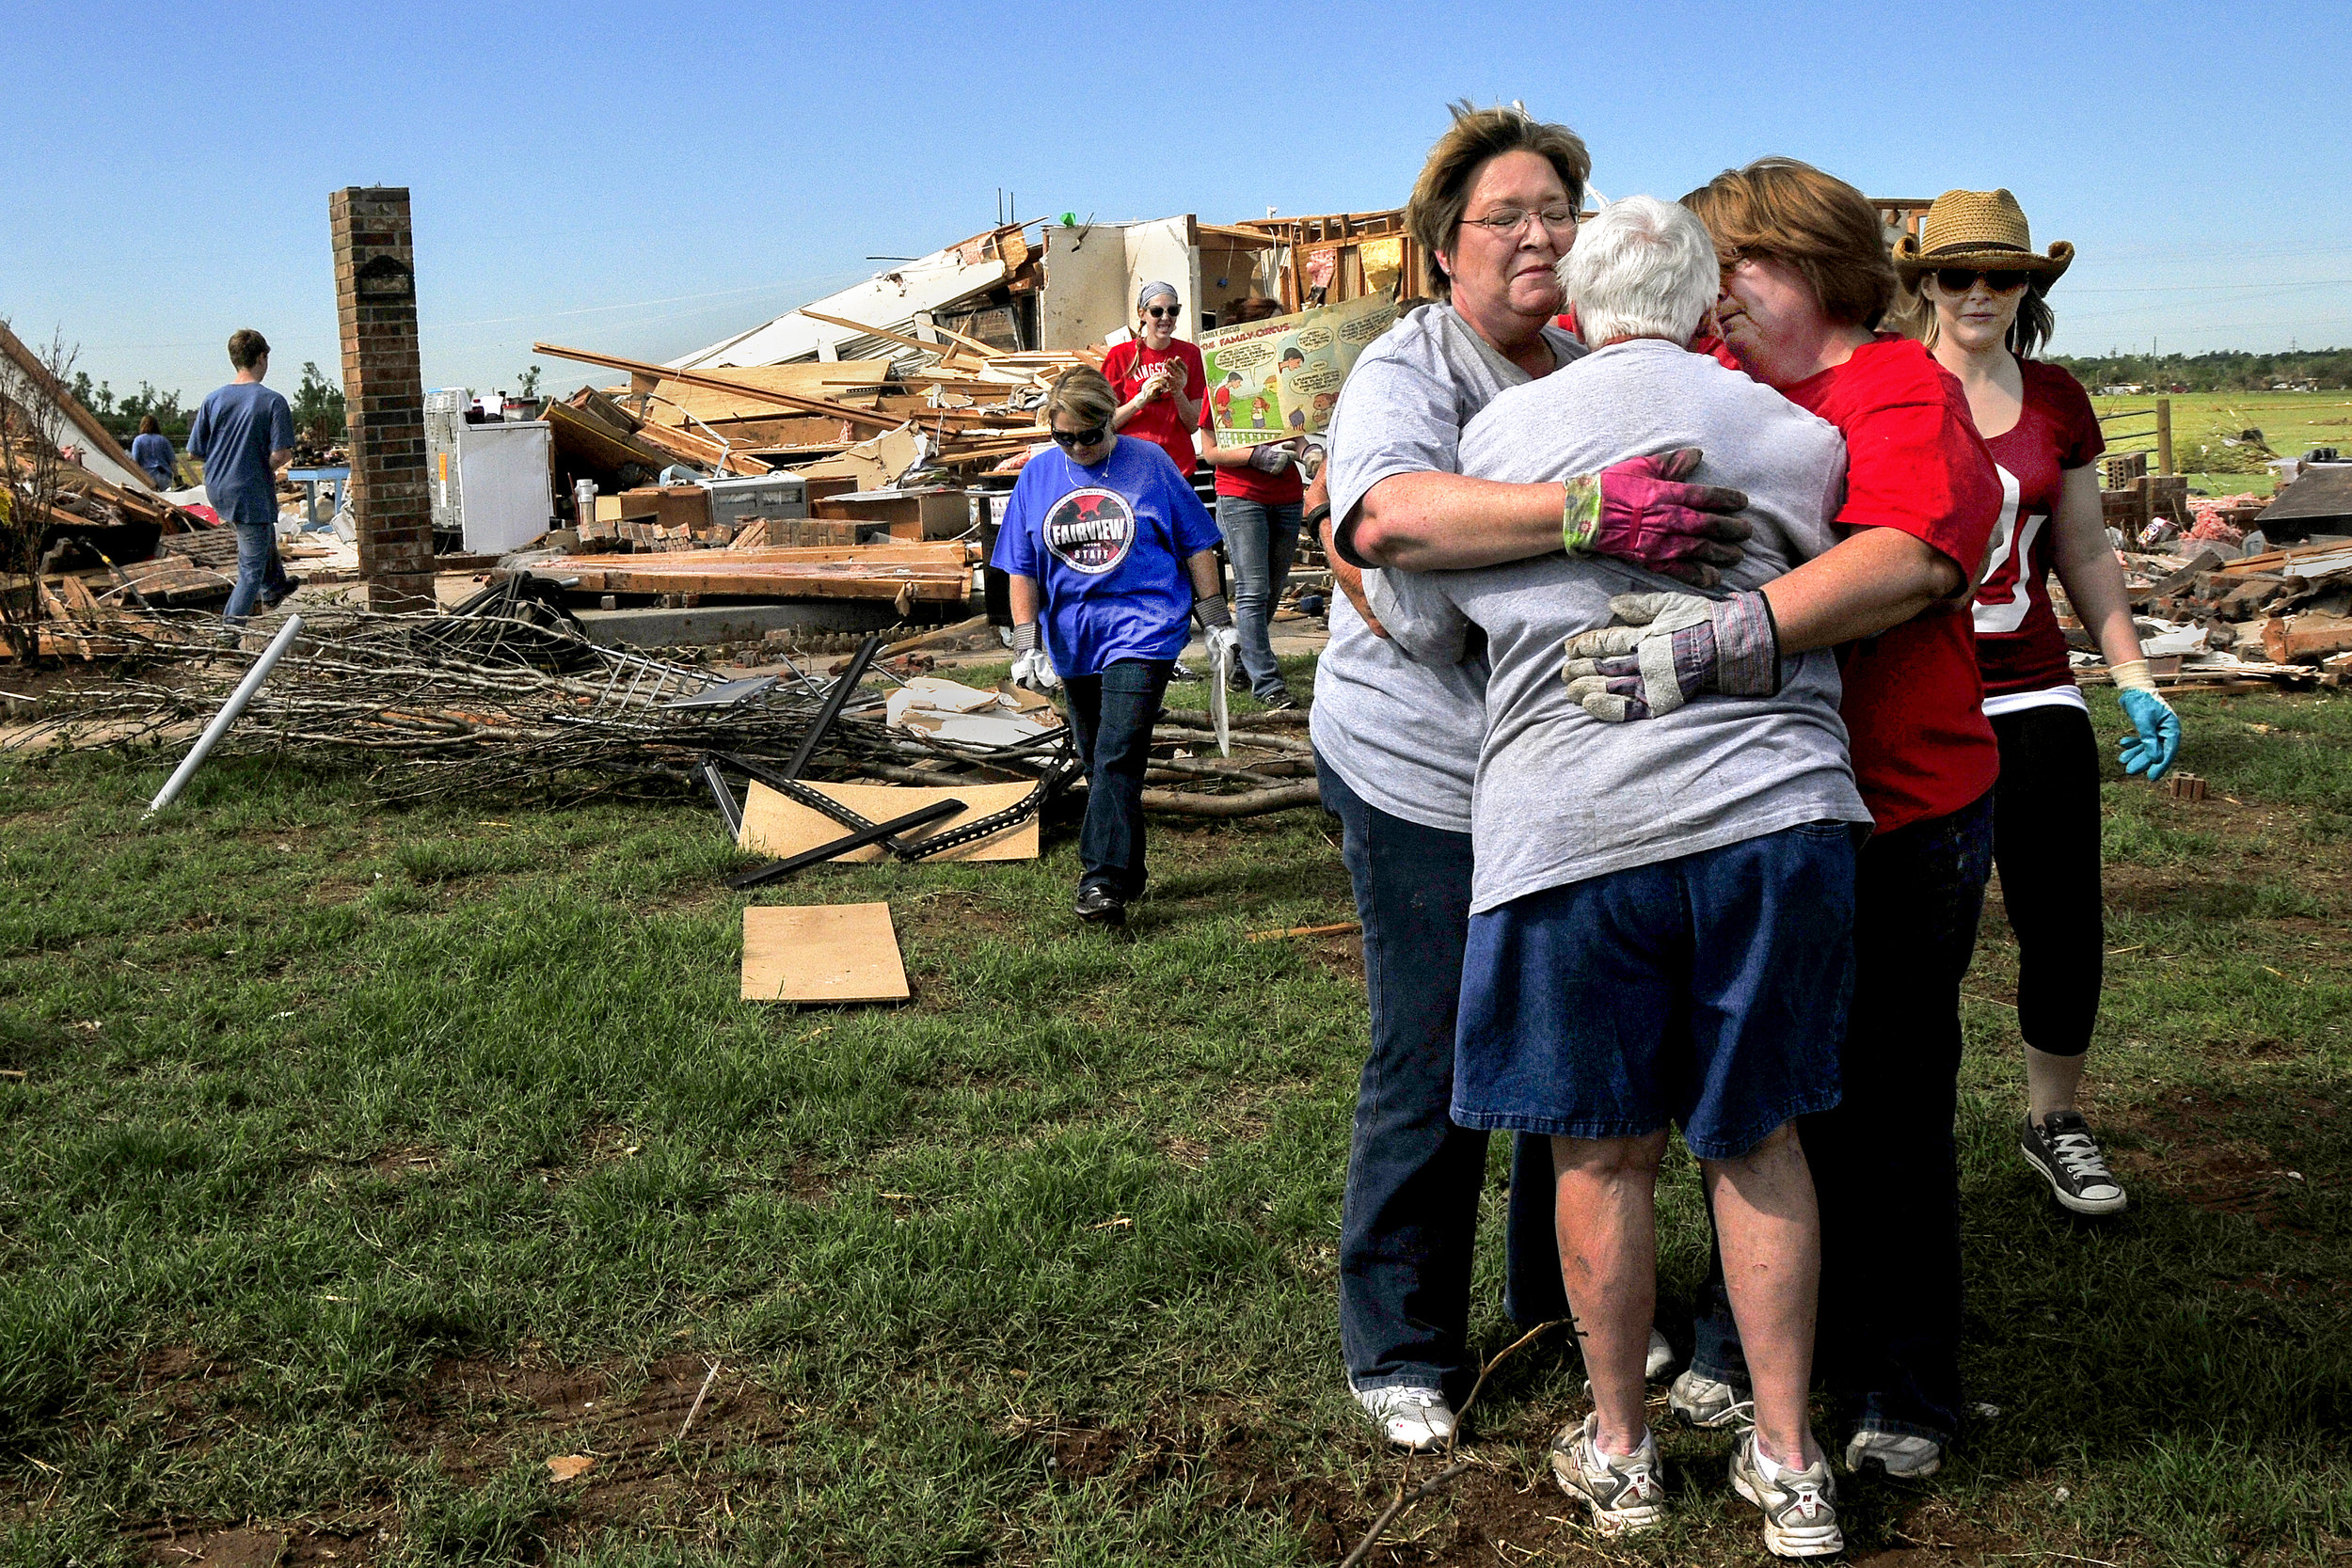 Teachers from Fairview Elementary school embrace former school counselor Kay Johnson, center, in front of her home in a neighborhood that was in the direct path of Mondays Tornado on Wednesday May, 22 in South Oklahoma City just west of Moore. The path that the tornado took through this neighborhood was almost exactly the same as on May 3rd 1999. 3120 sw 153rd st. Oklahoma City